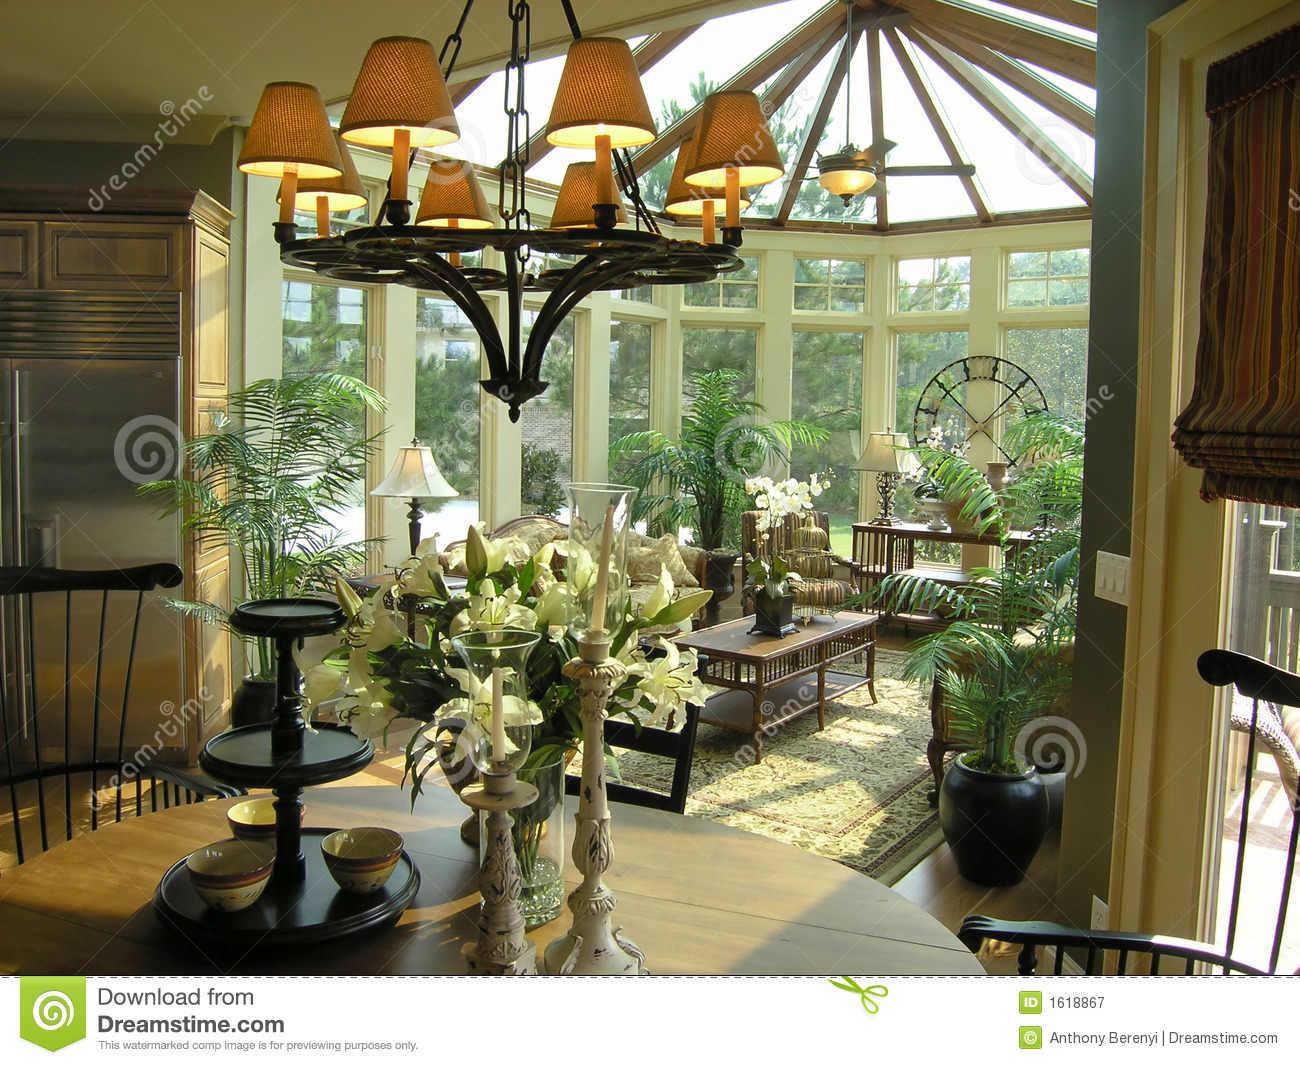 Mediterrane Küche Im Winter Luxury 21 Sun Room Stock Image Image Of Pretty Inside